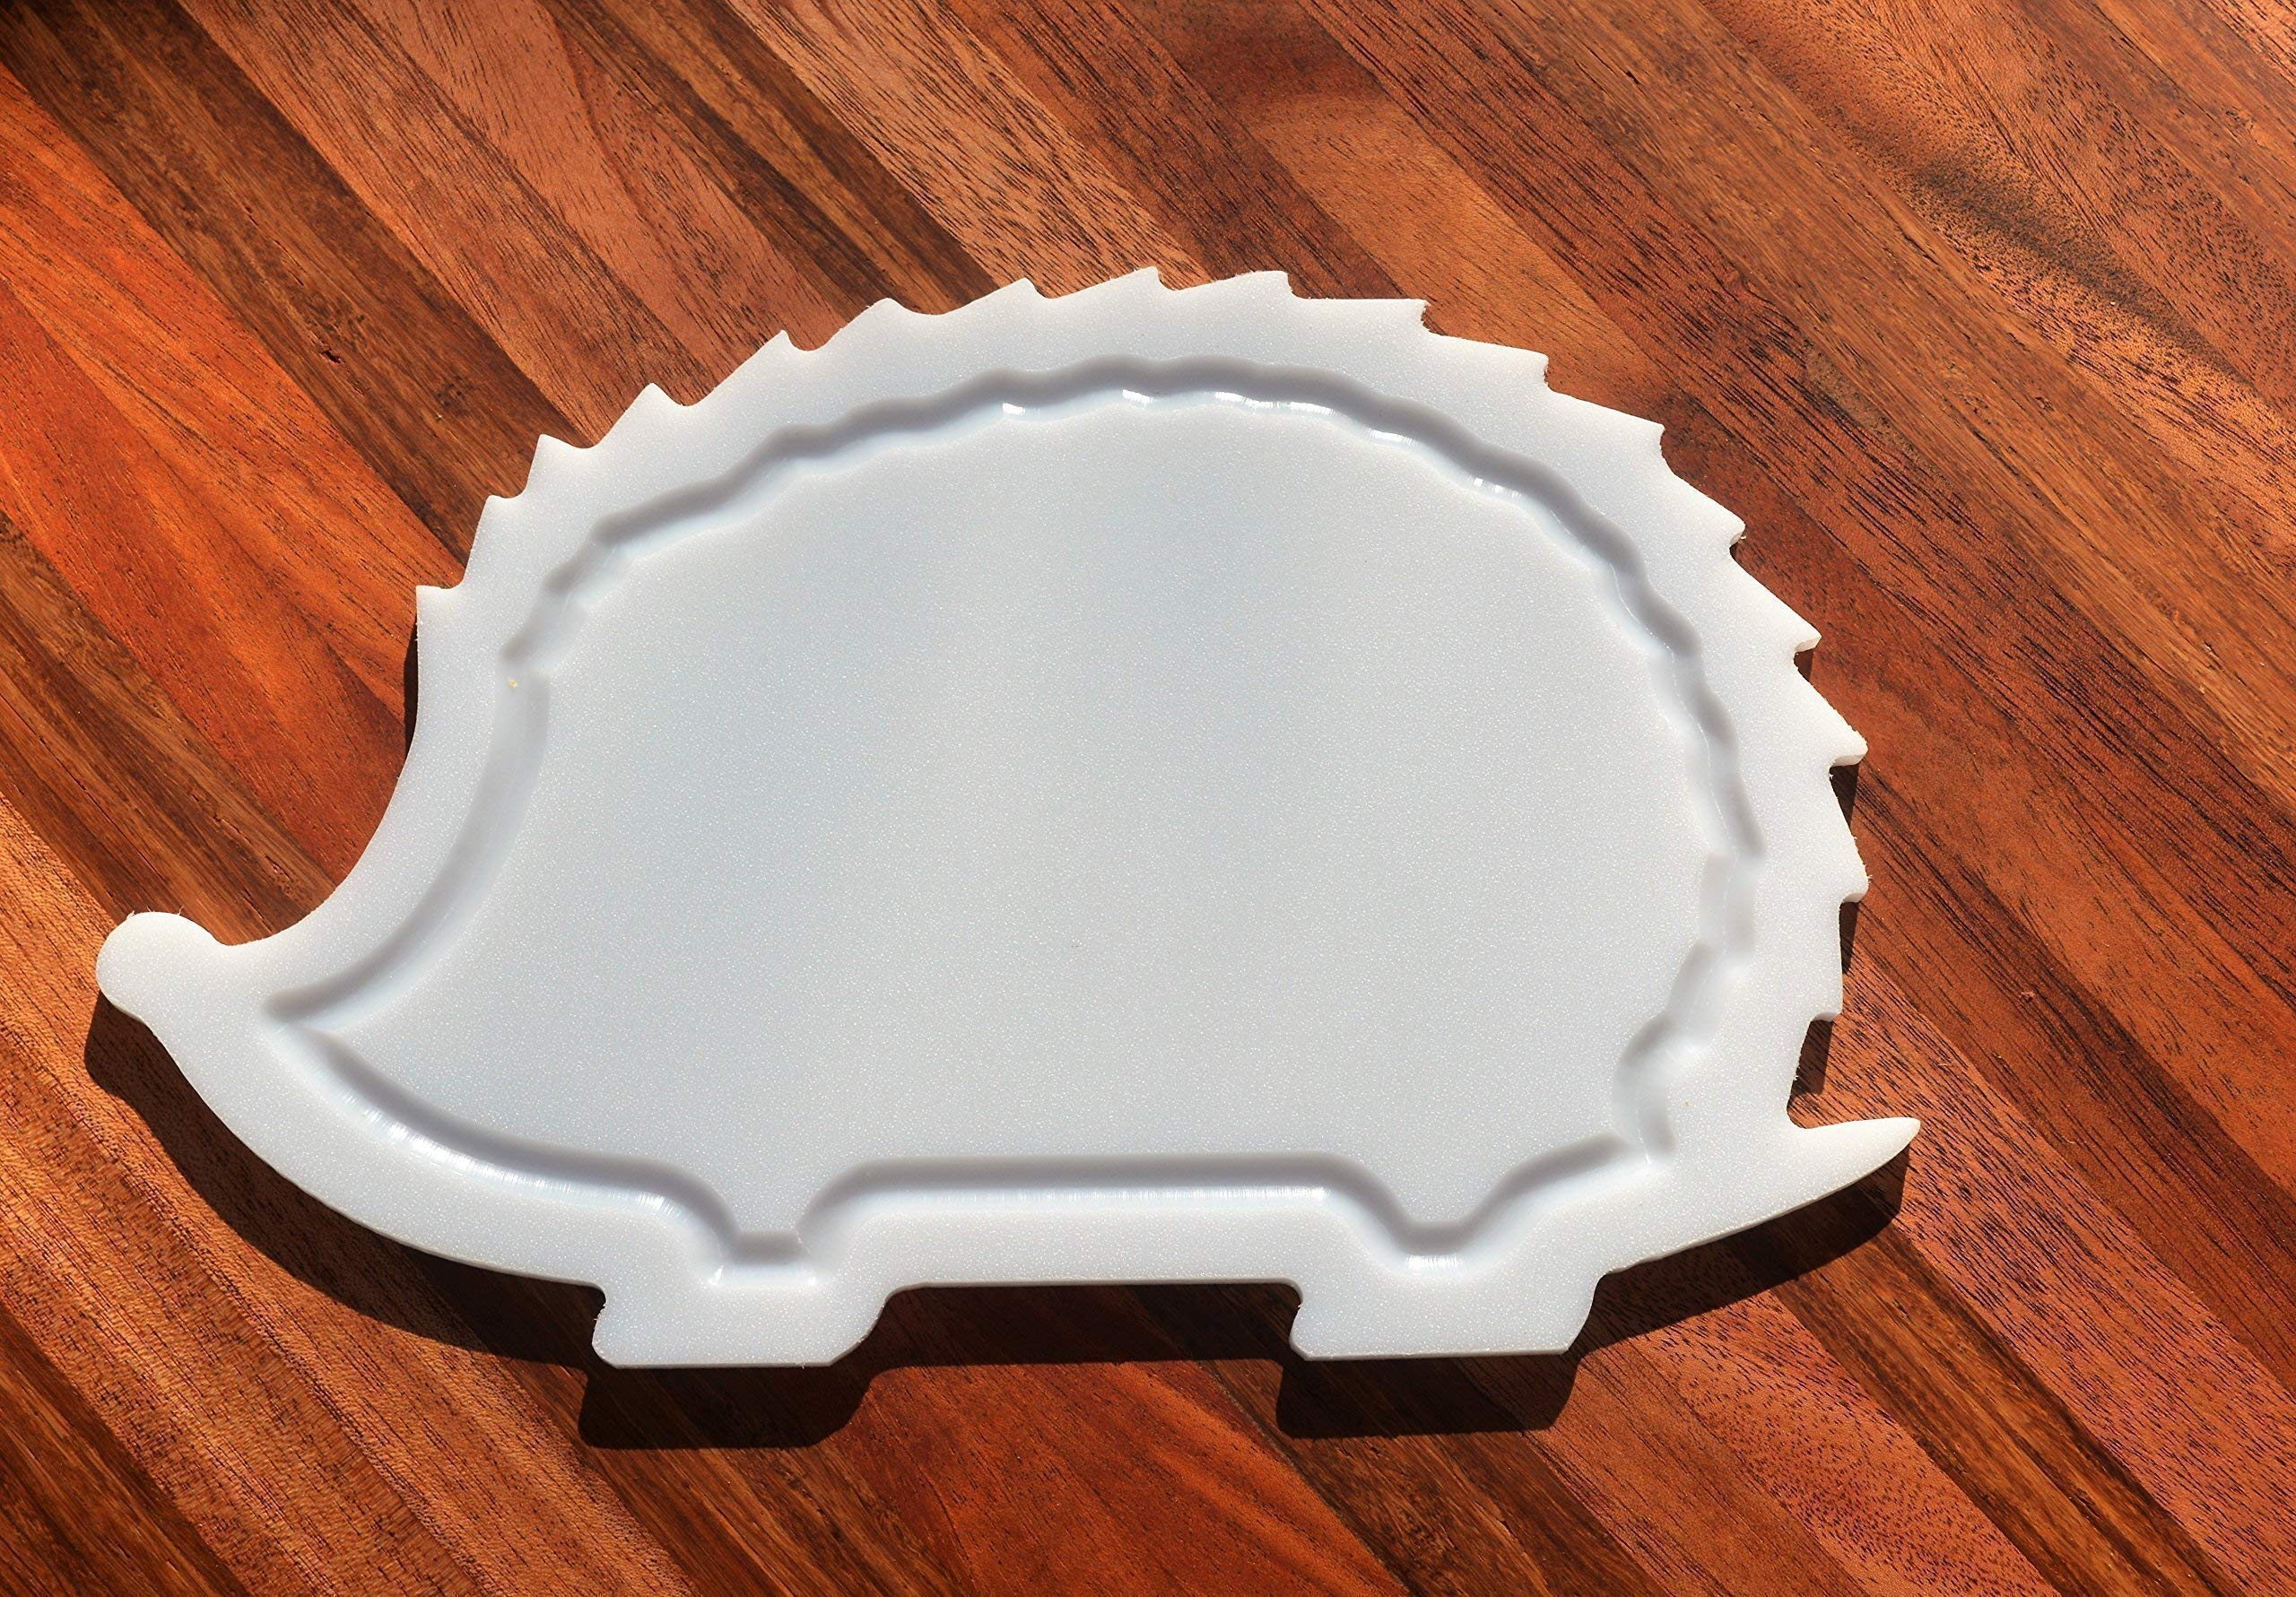 NEW HIGH QUALITY - Hedgehog Shaped White Plastic HDPE Cutting Board 11x7 Animal Lovers Dishwasher Safe FREE FAST SHIPPING! by With the Grain Woodworks (Image #1)